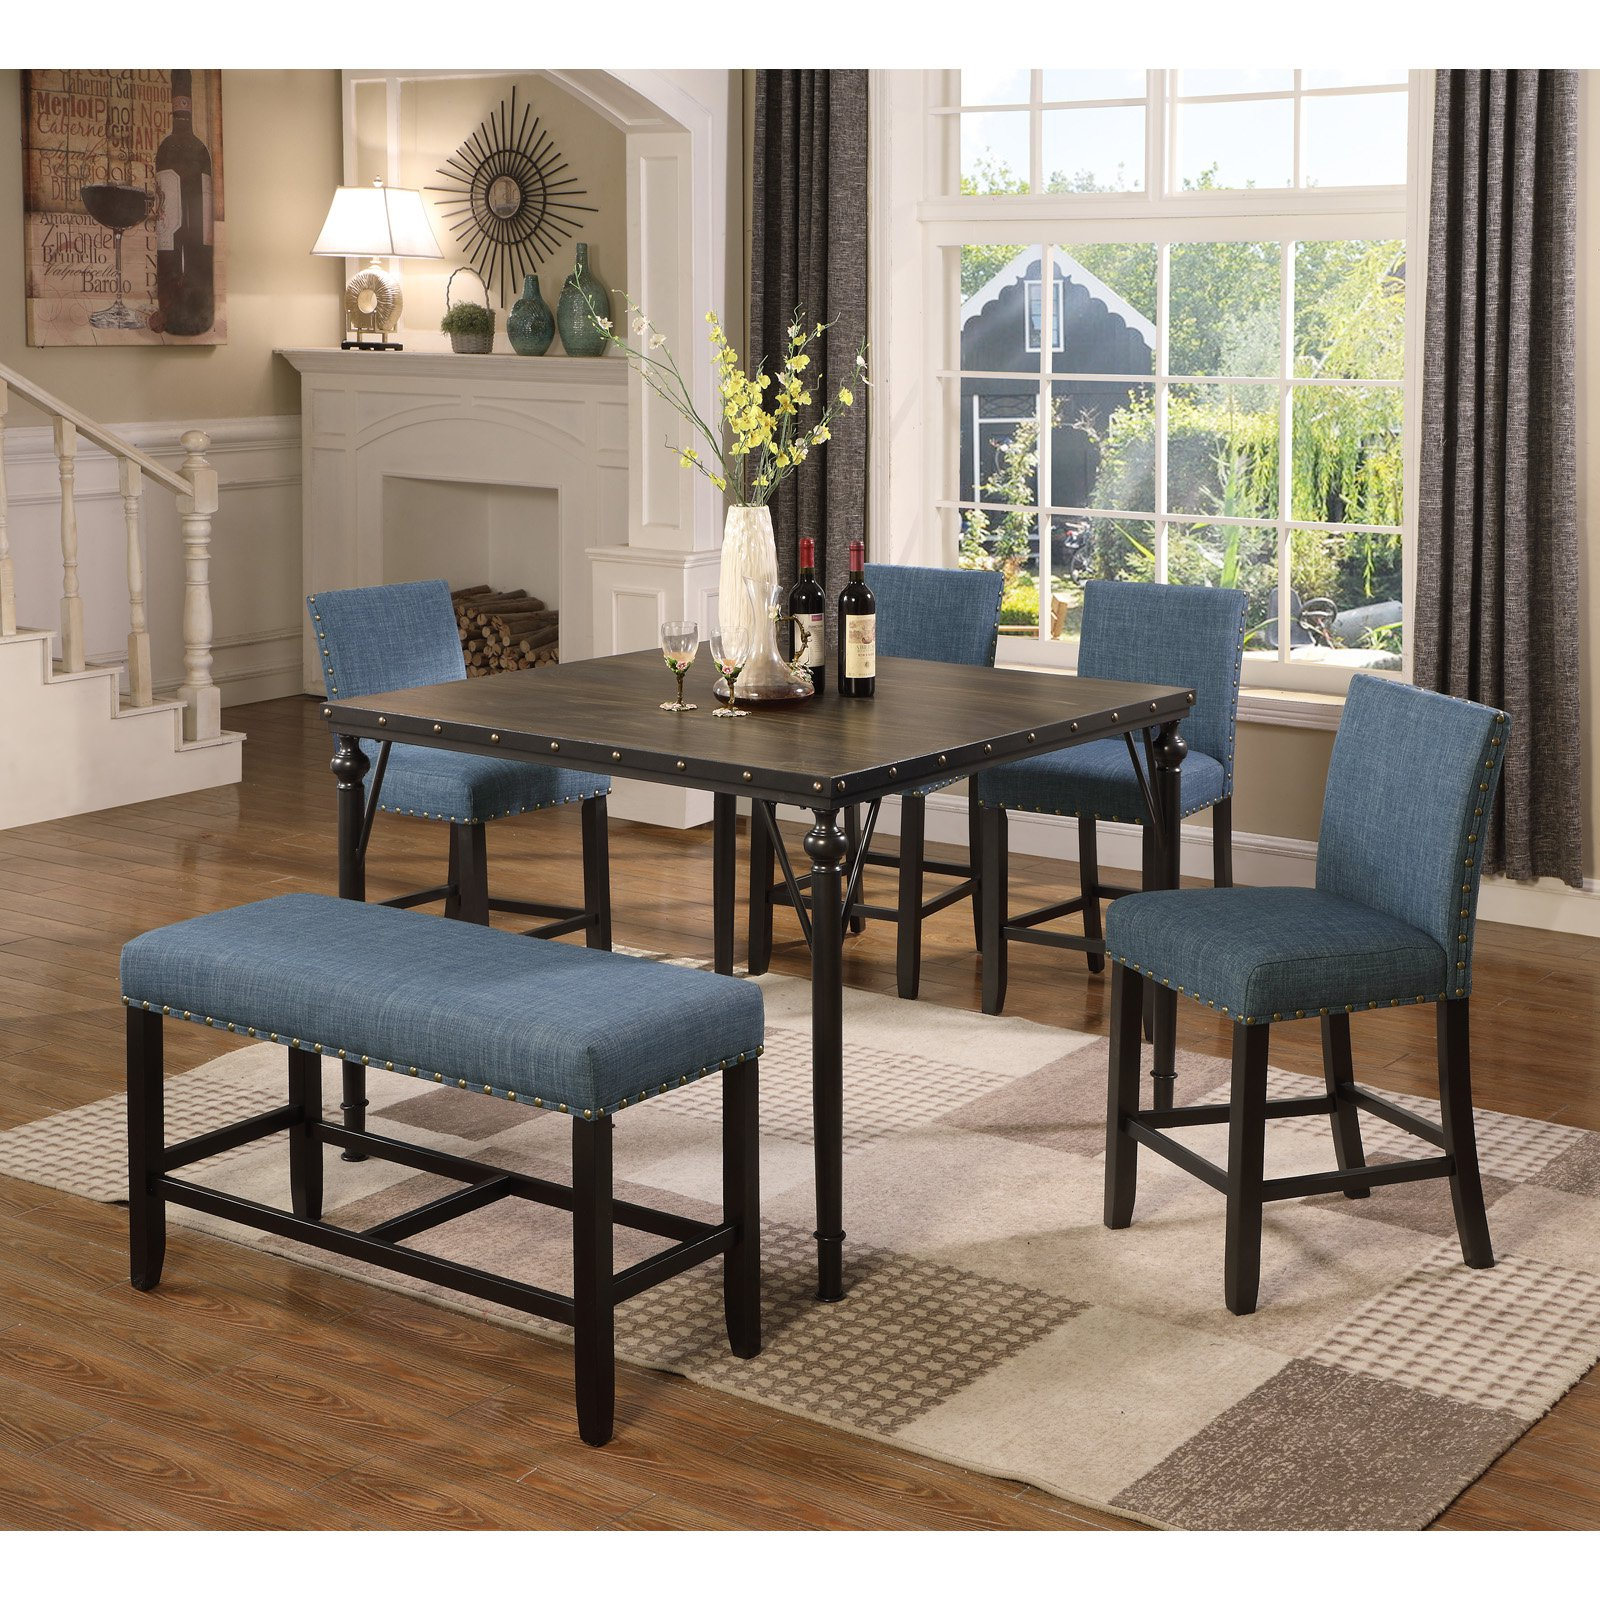 Ordinaire Roundhill Furniture Biony 6 Piece Square Counter Height Dining Table Set